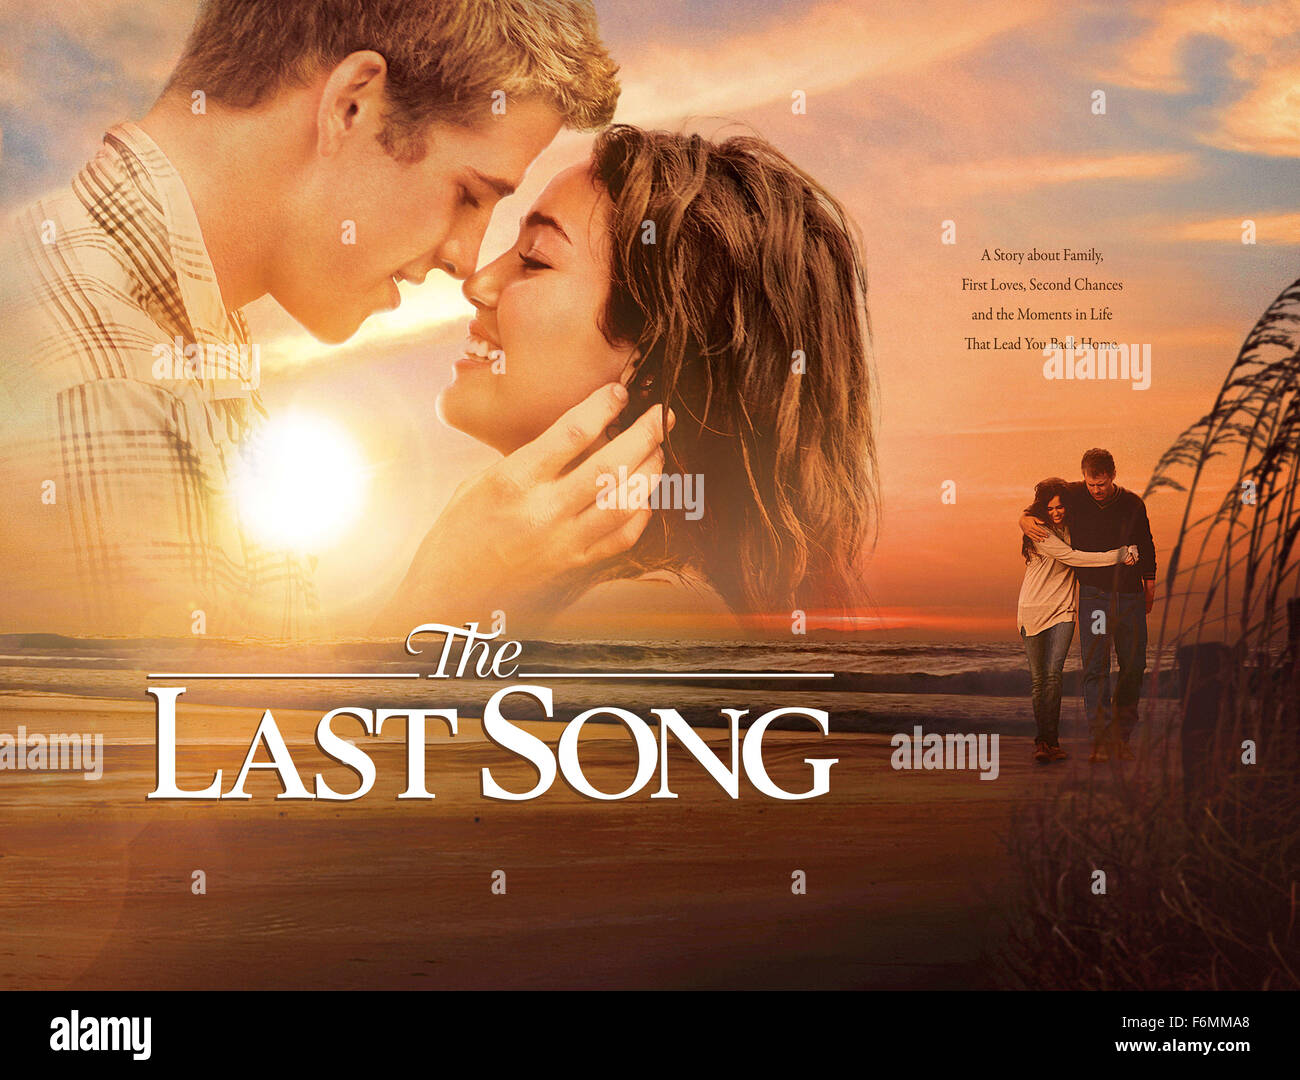 RELEASE DATE: March 31, 2010 MOVIE TITLE: The Last Song STUDIO Stock